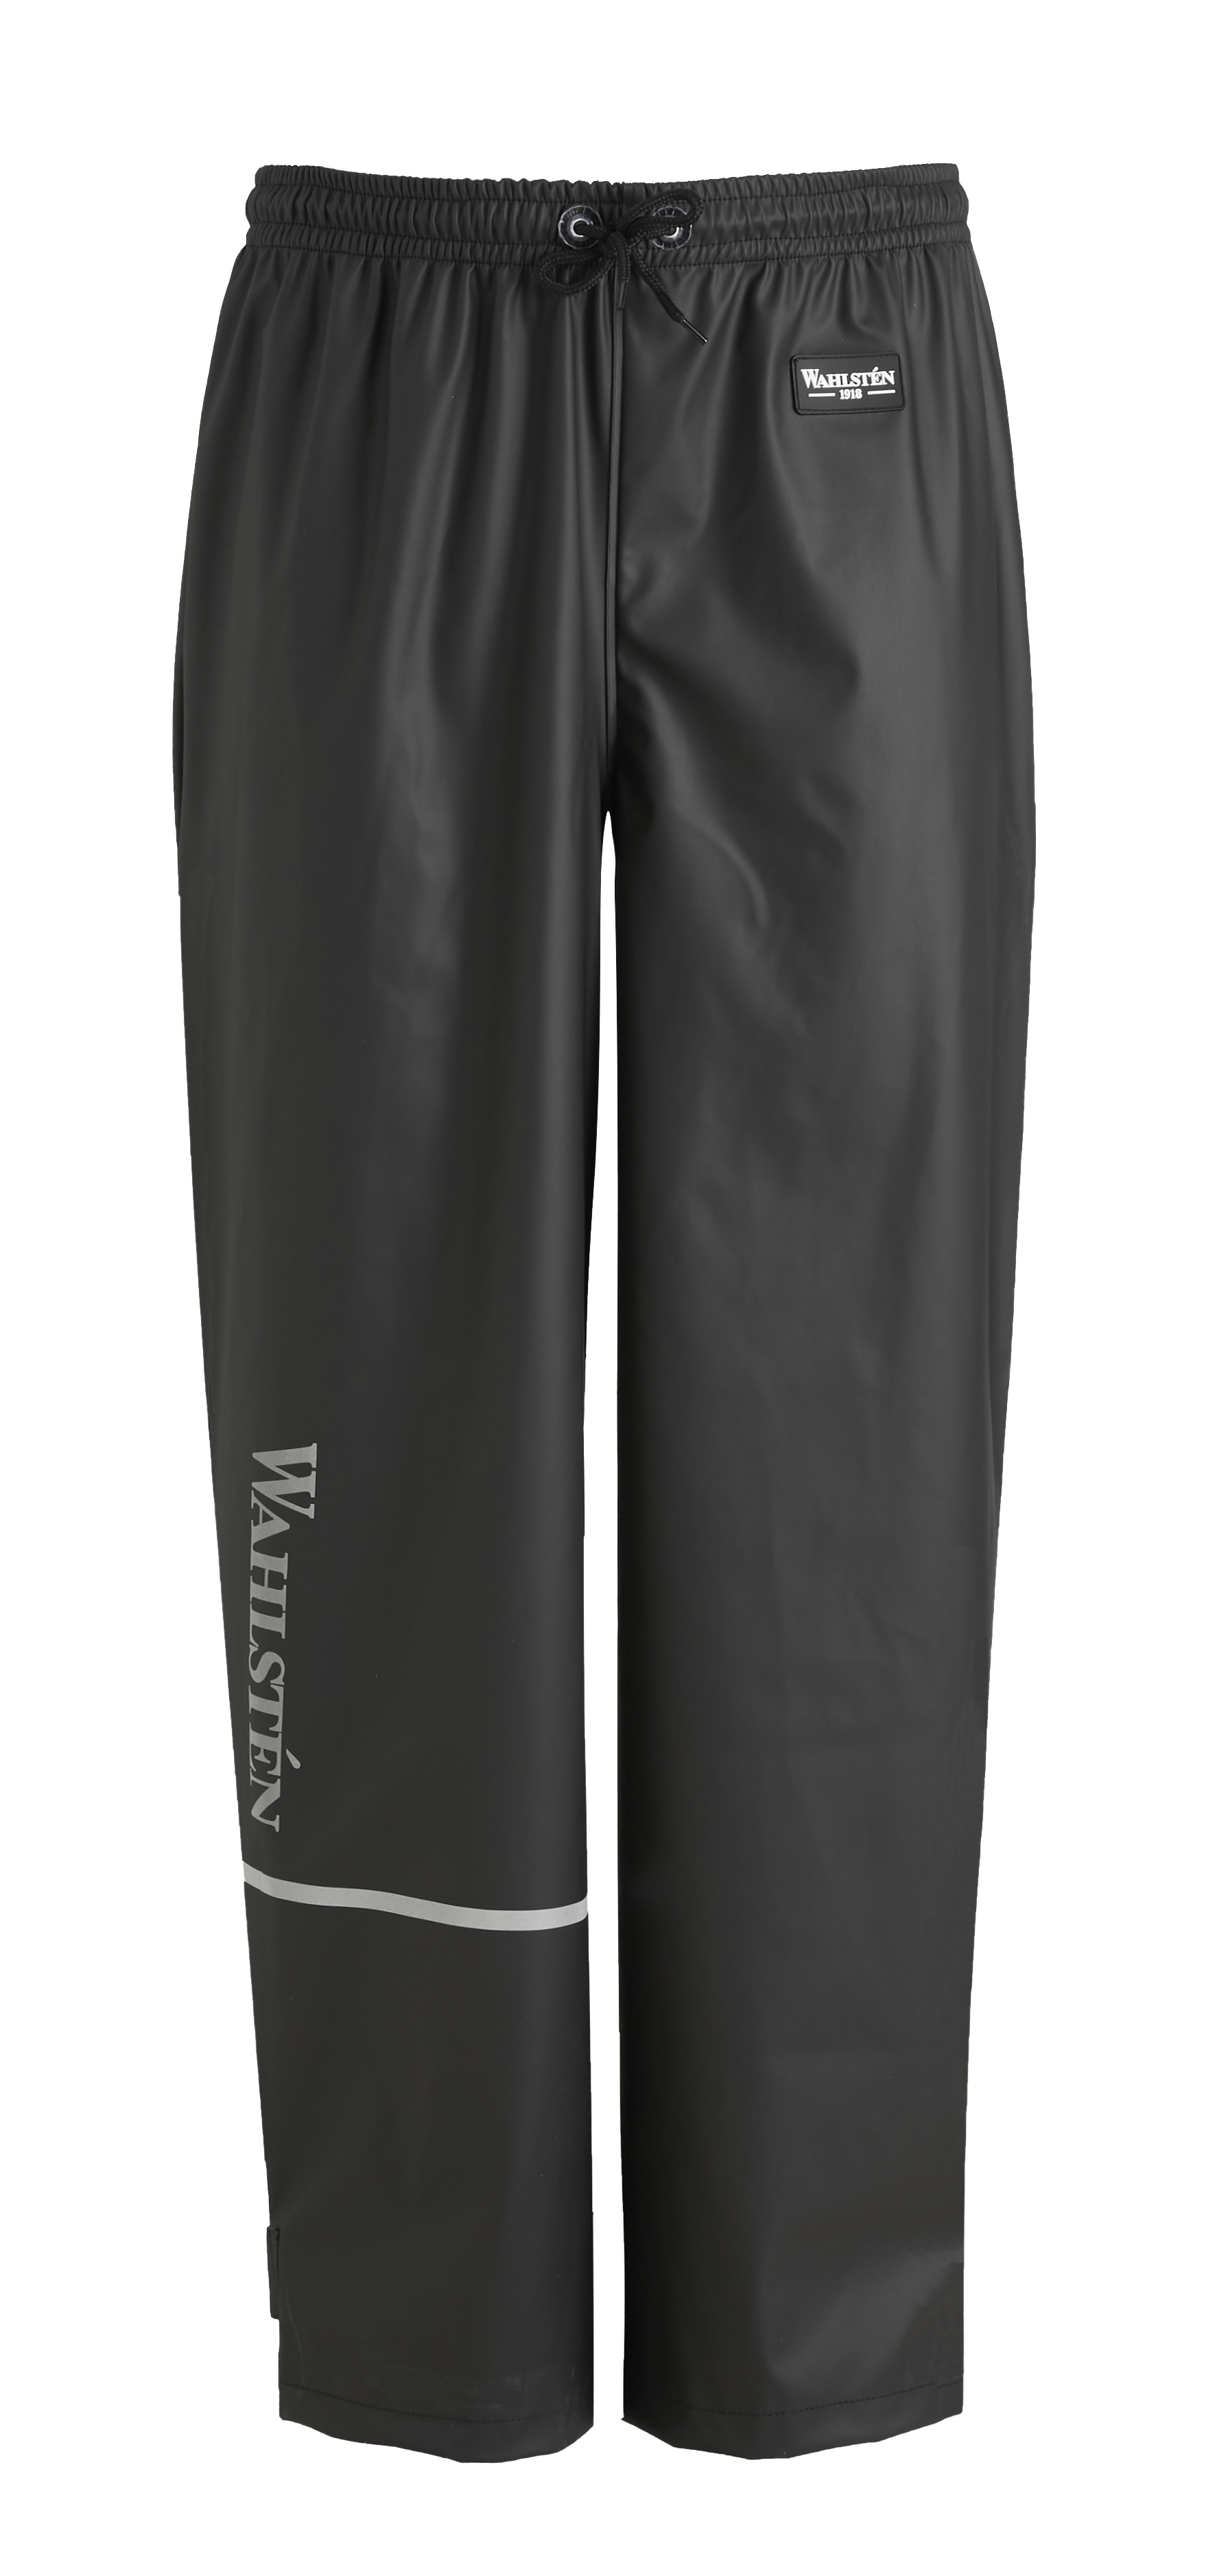 Wahlsten Training Rain Trousers